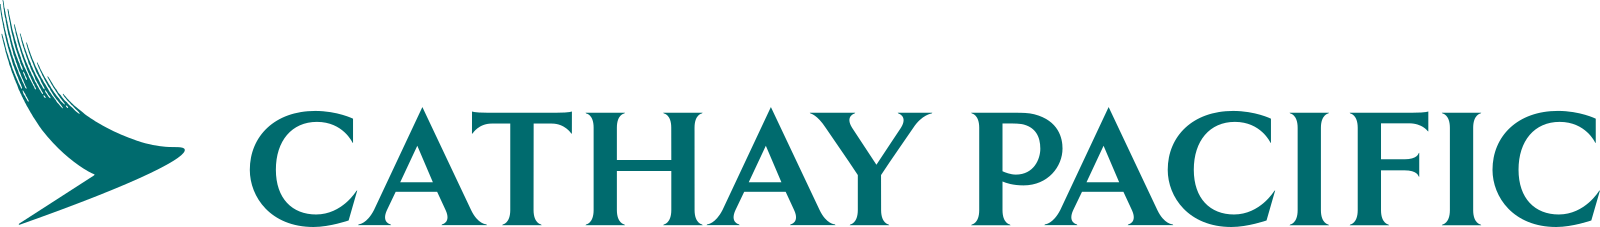 cathay pacific logo 2 - Cathay Pacific Logo